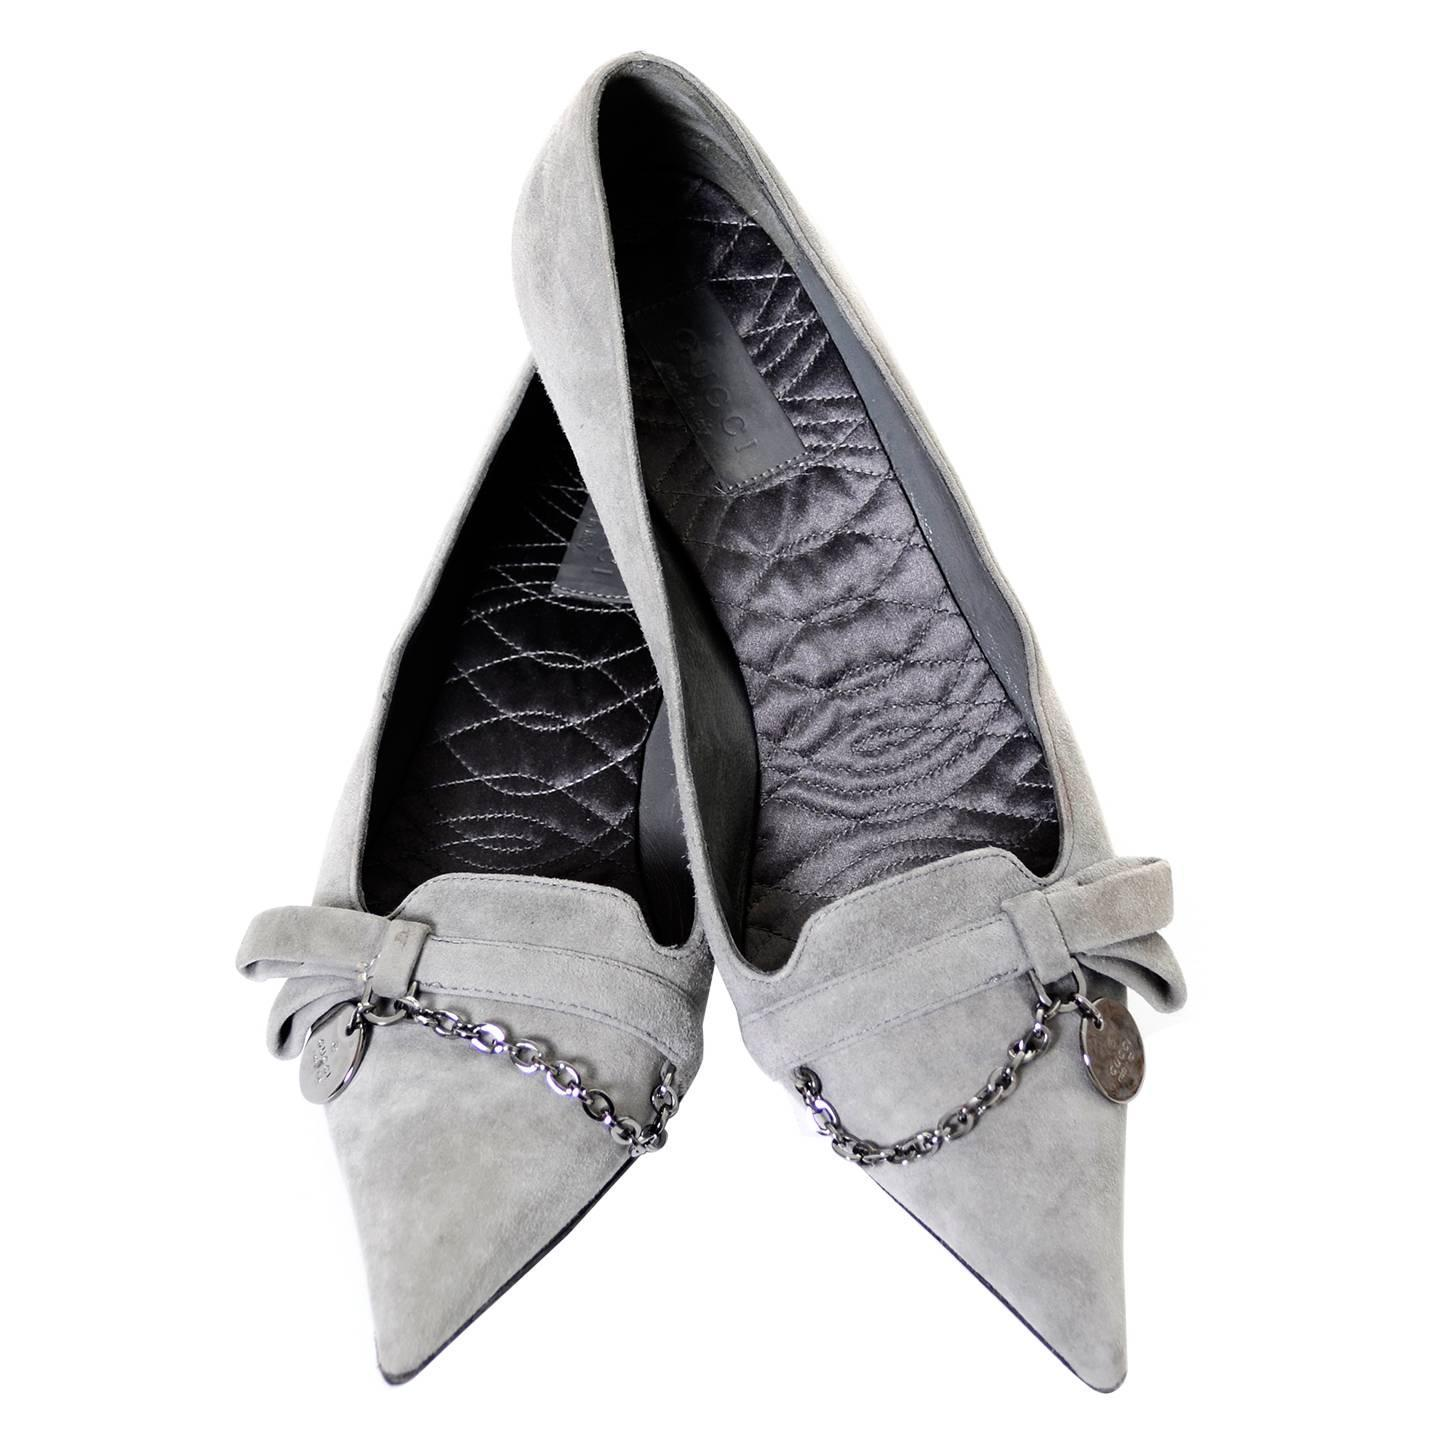 e23c89bdba23 NEW Vintage Gucci Gray Suede Shoes Chain Detail Kitten Heels Medallion 7.5  B For Sale at 1stdibs